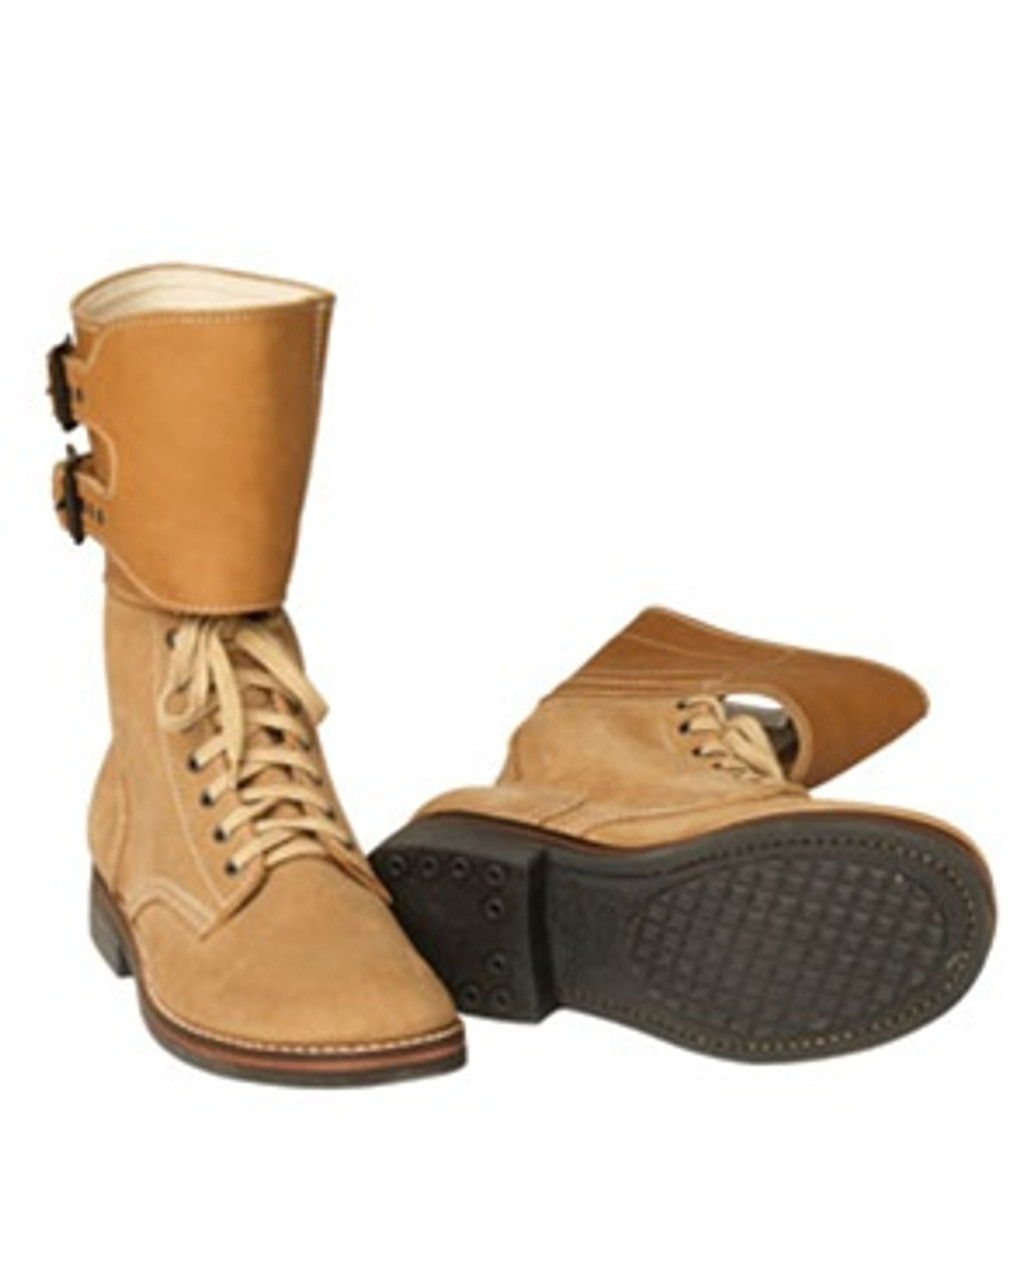 M43 Combat Boots from Hessen Antique